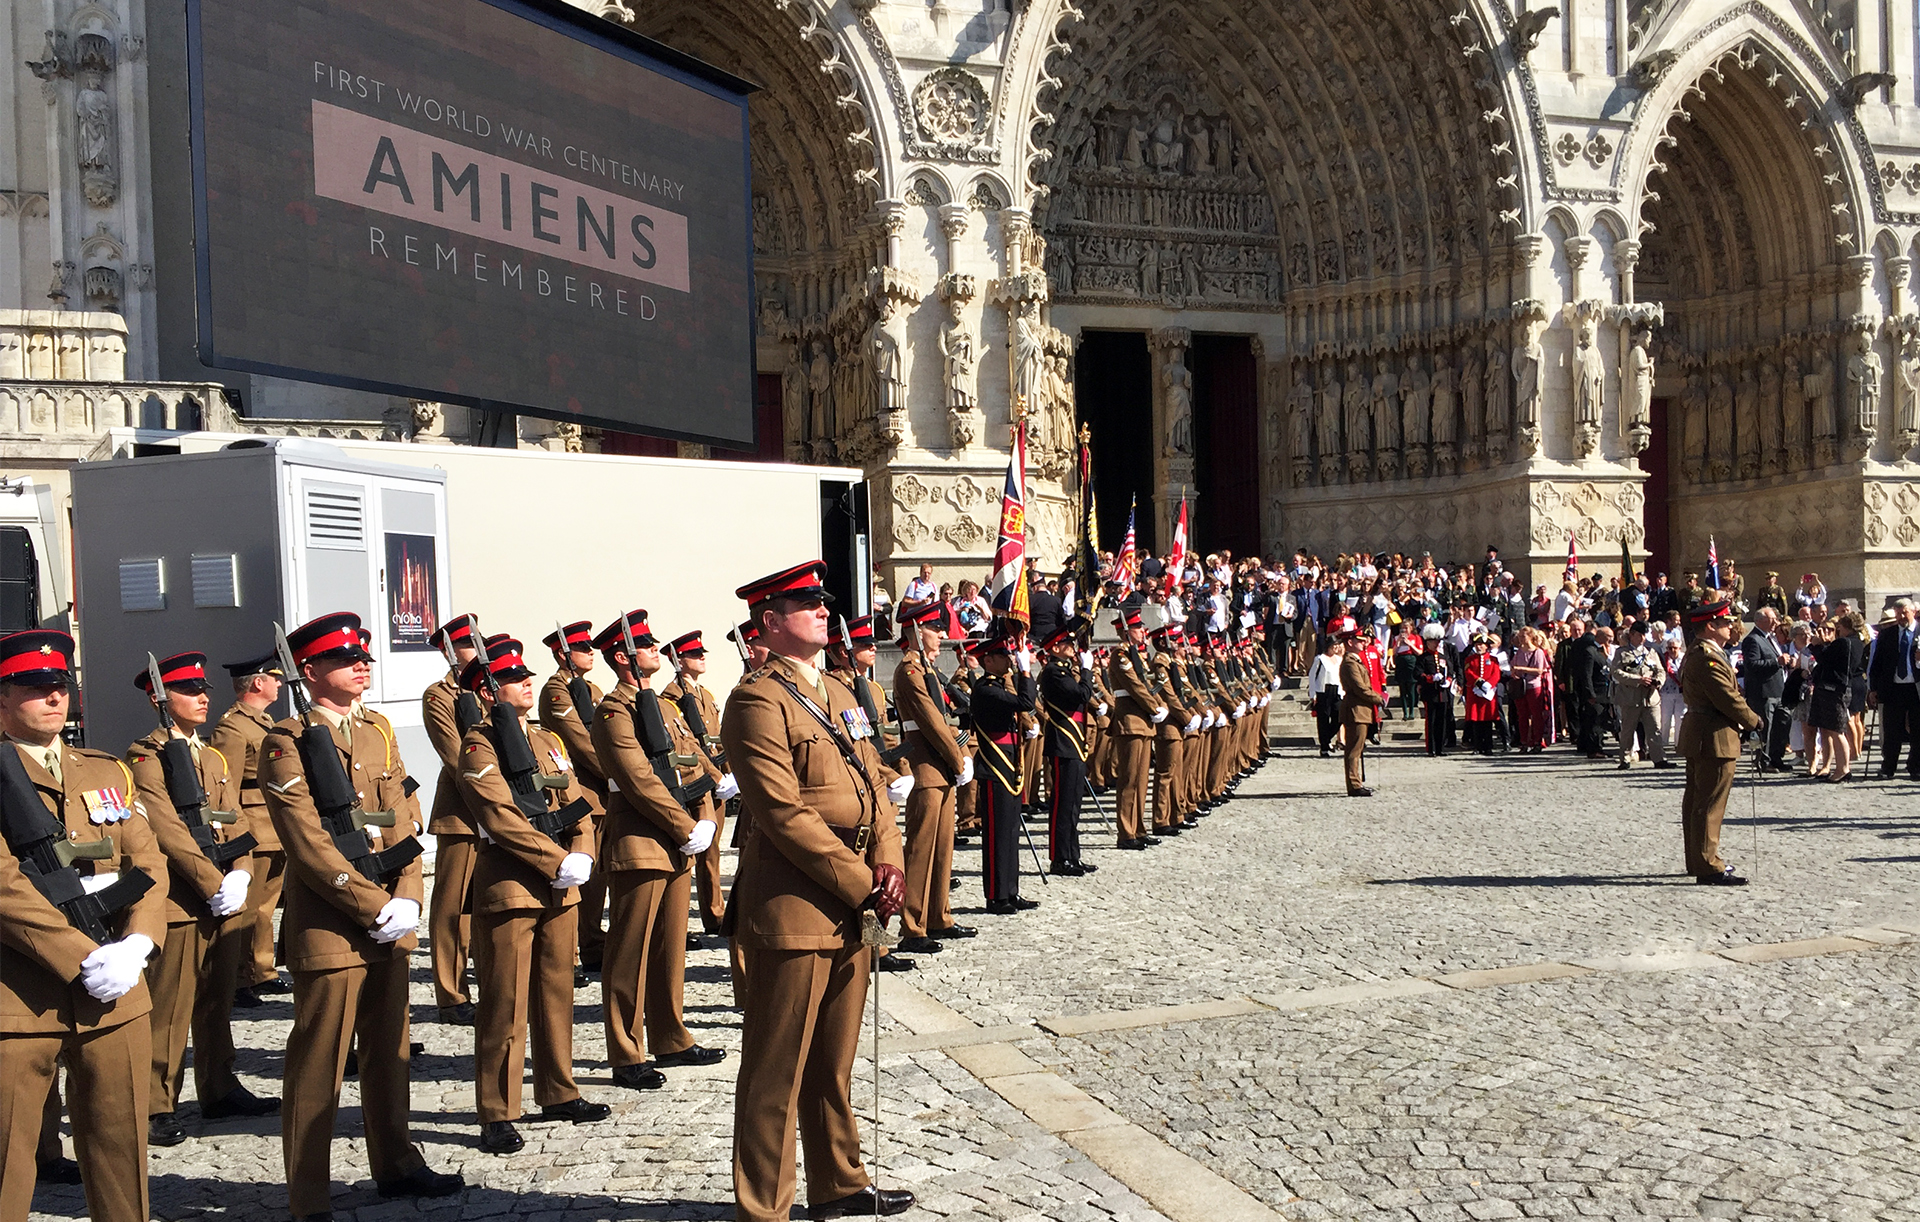 First World War, the battle of Amiens is remembered 100 years later. Attended by Prince William and British Prime Minister Theresa May.